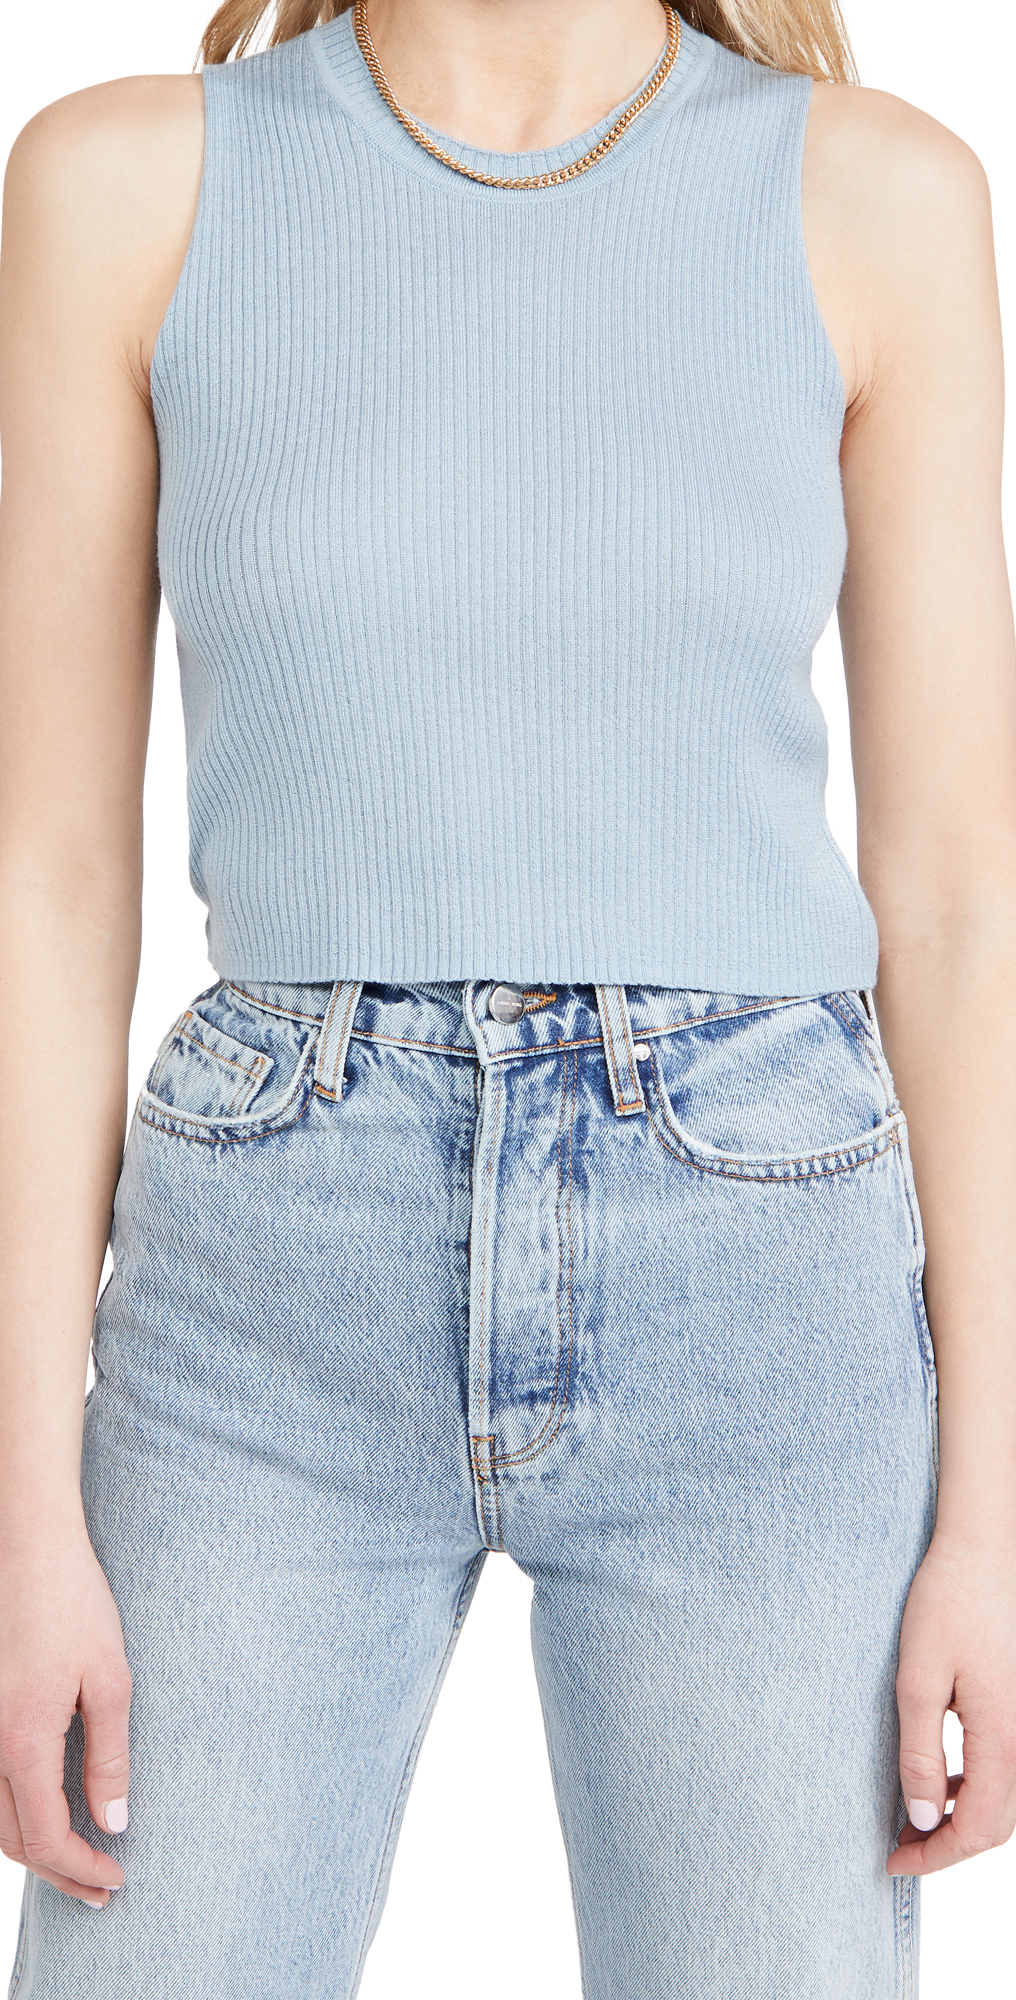 Sablyn Angie Cropped Cashmere Top